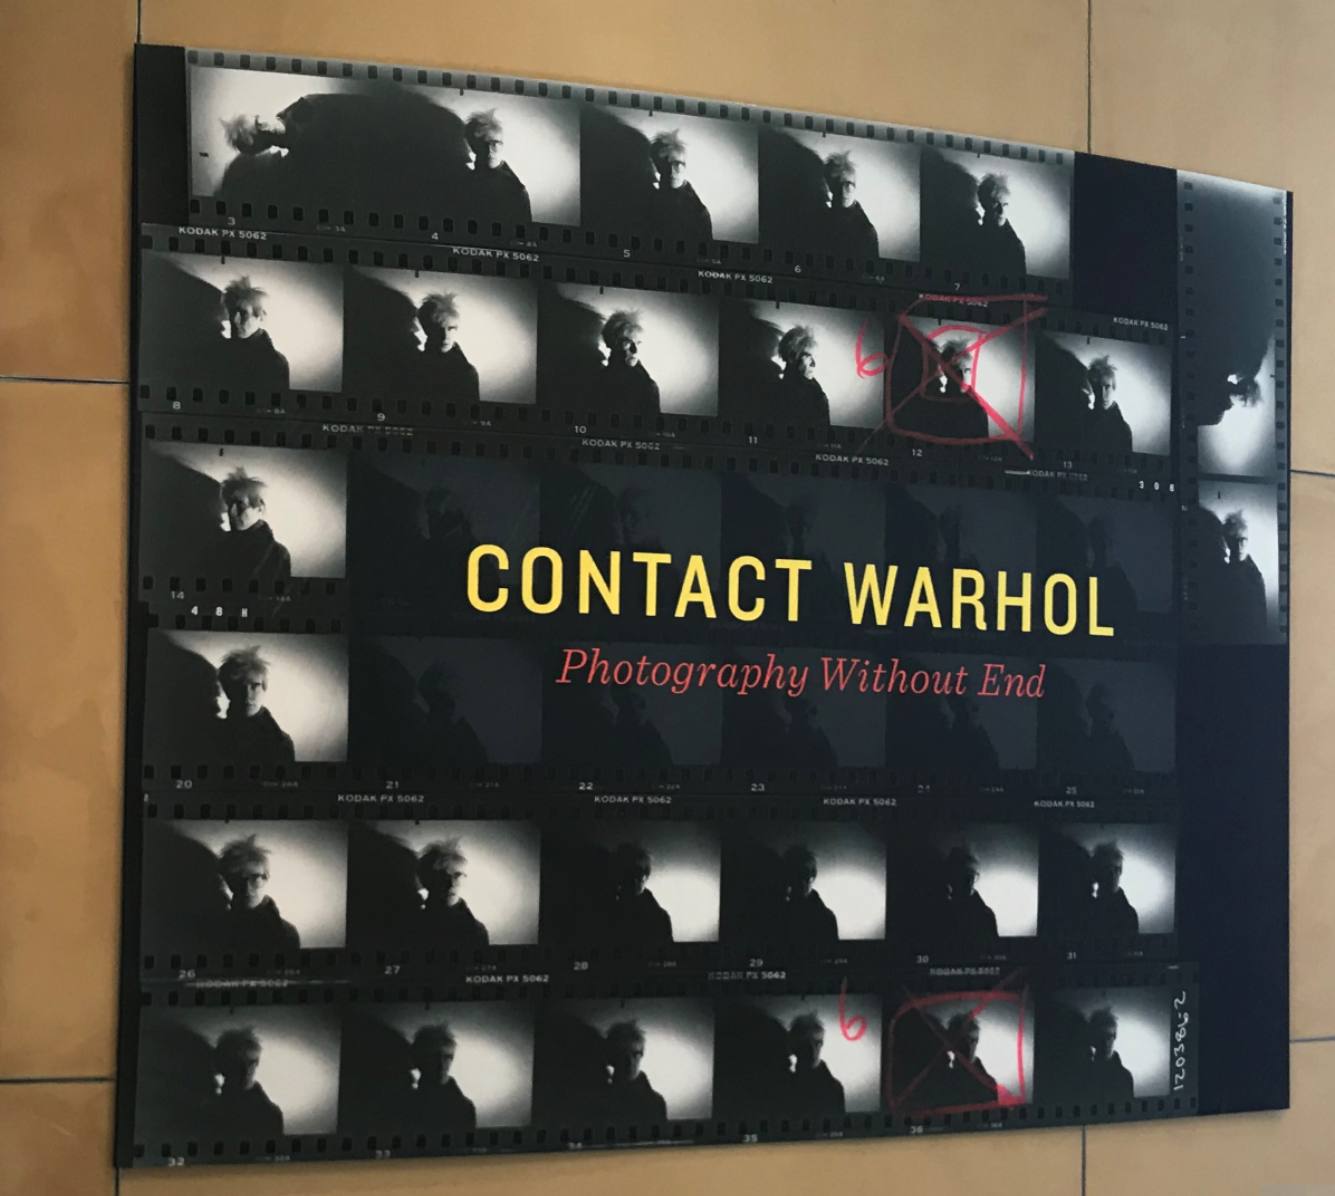 Contact Warhol Display by BarkerBlue-1